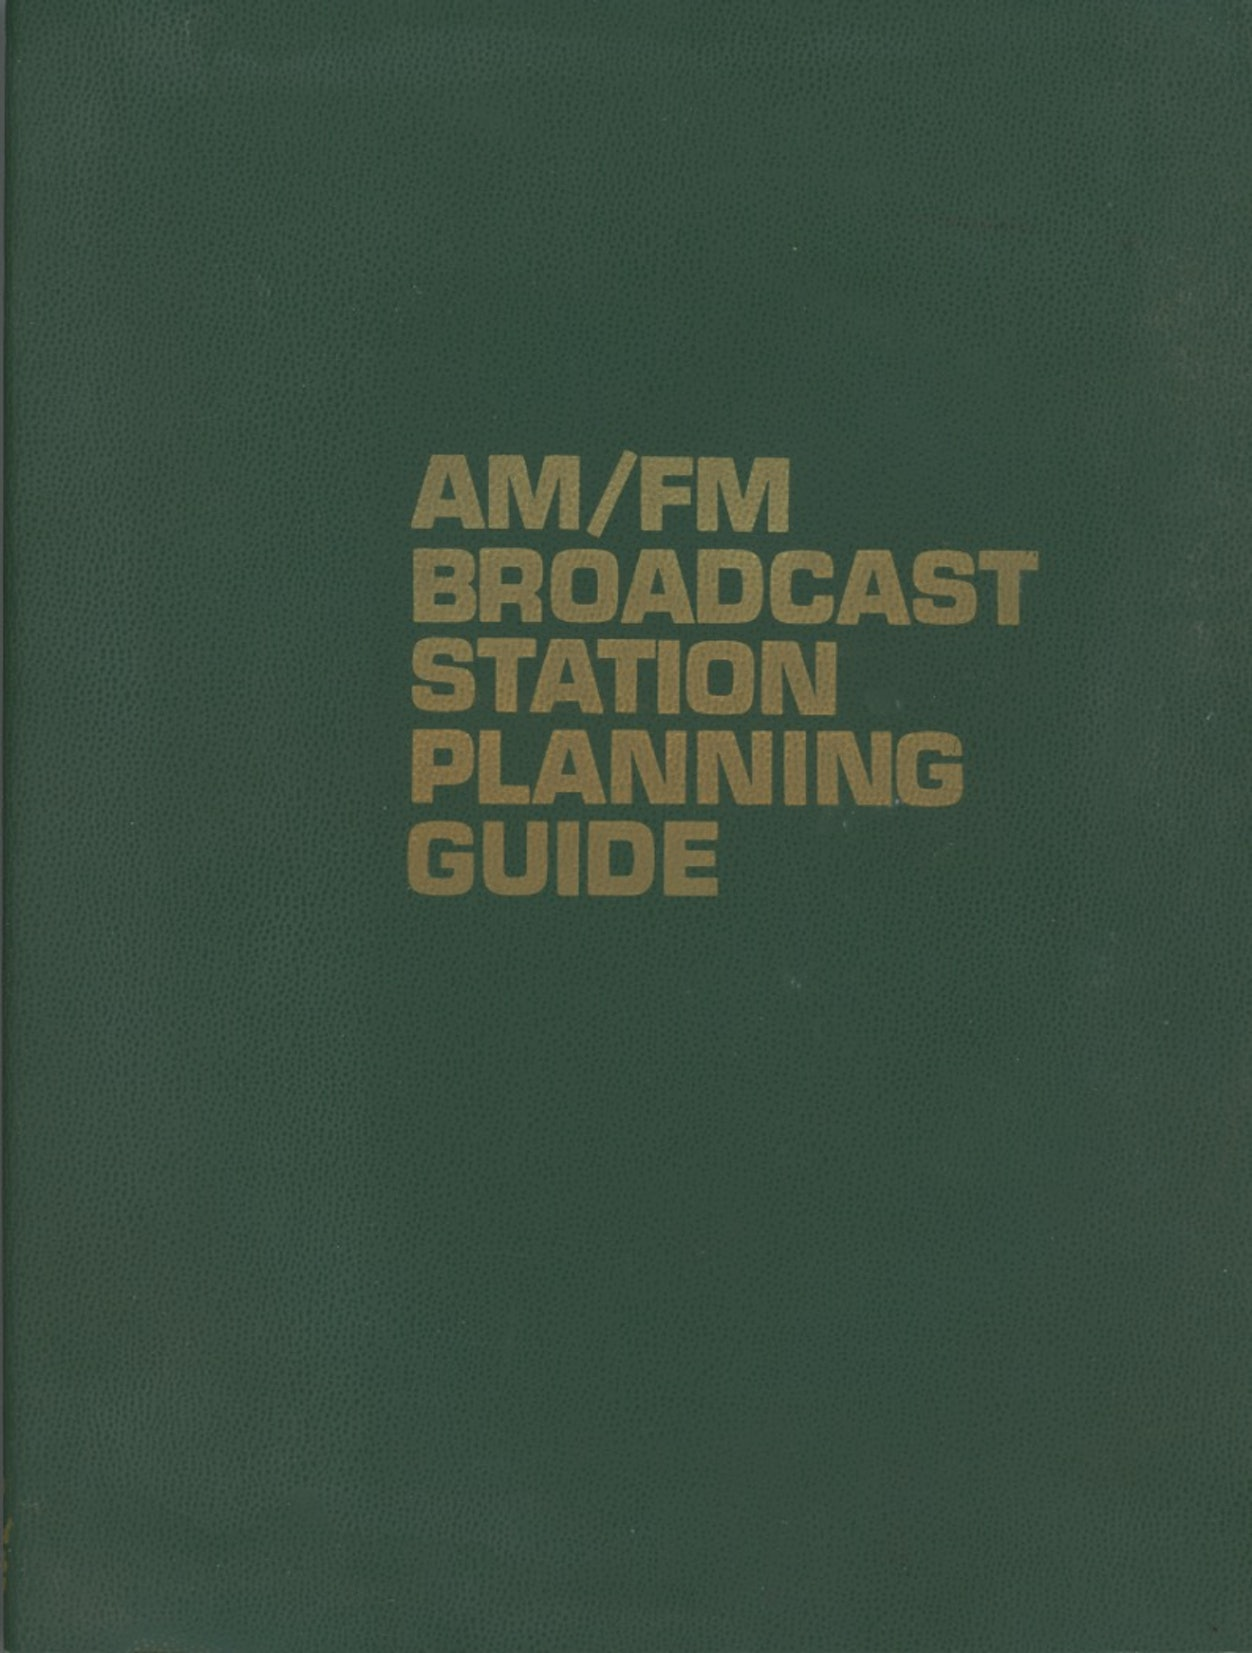 AM/FM Broadcast Station Planning Guide